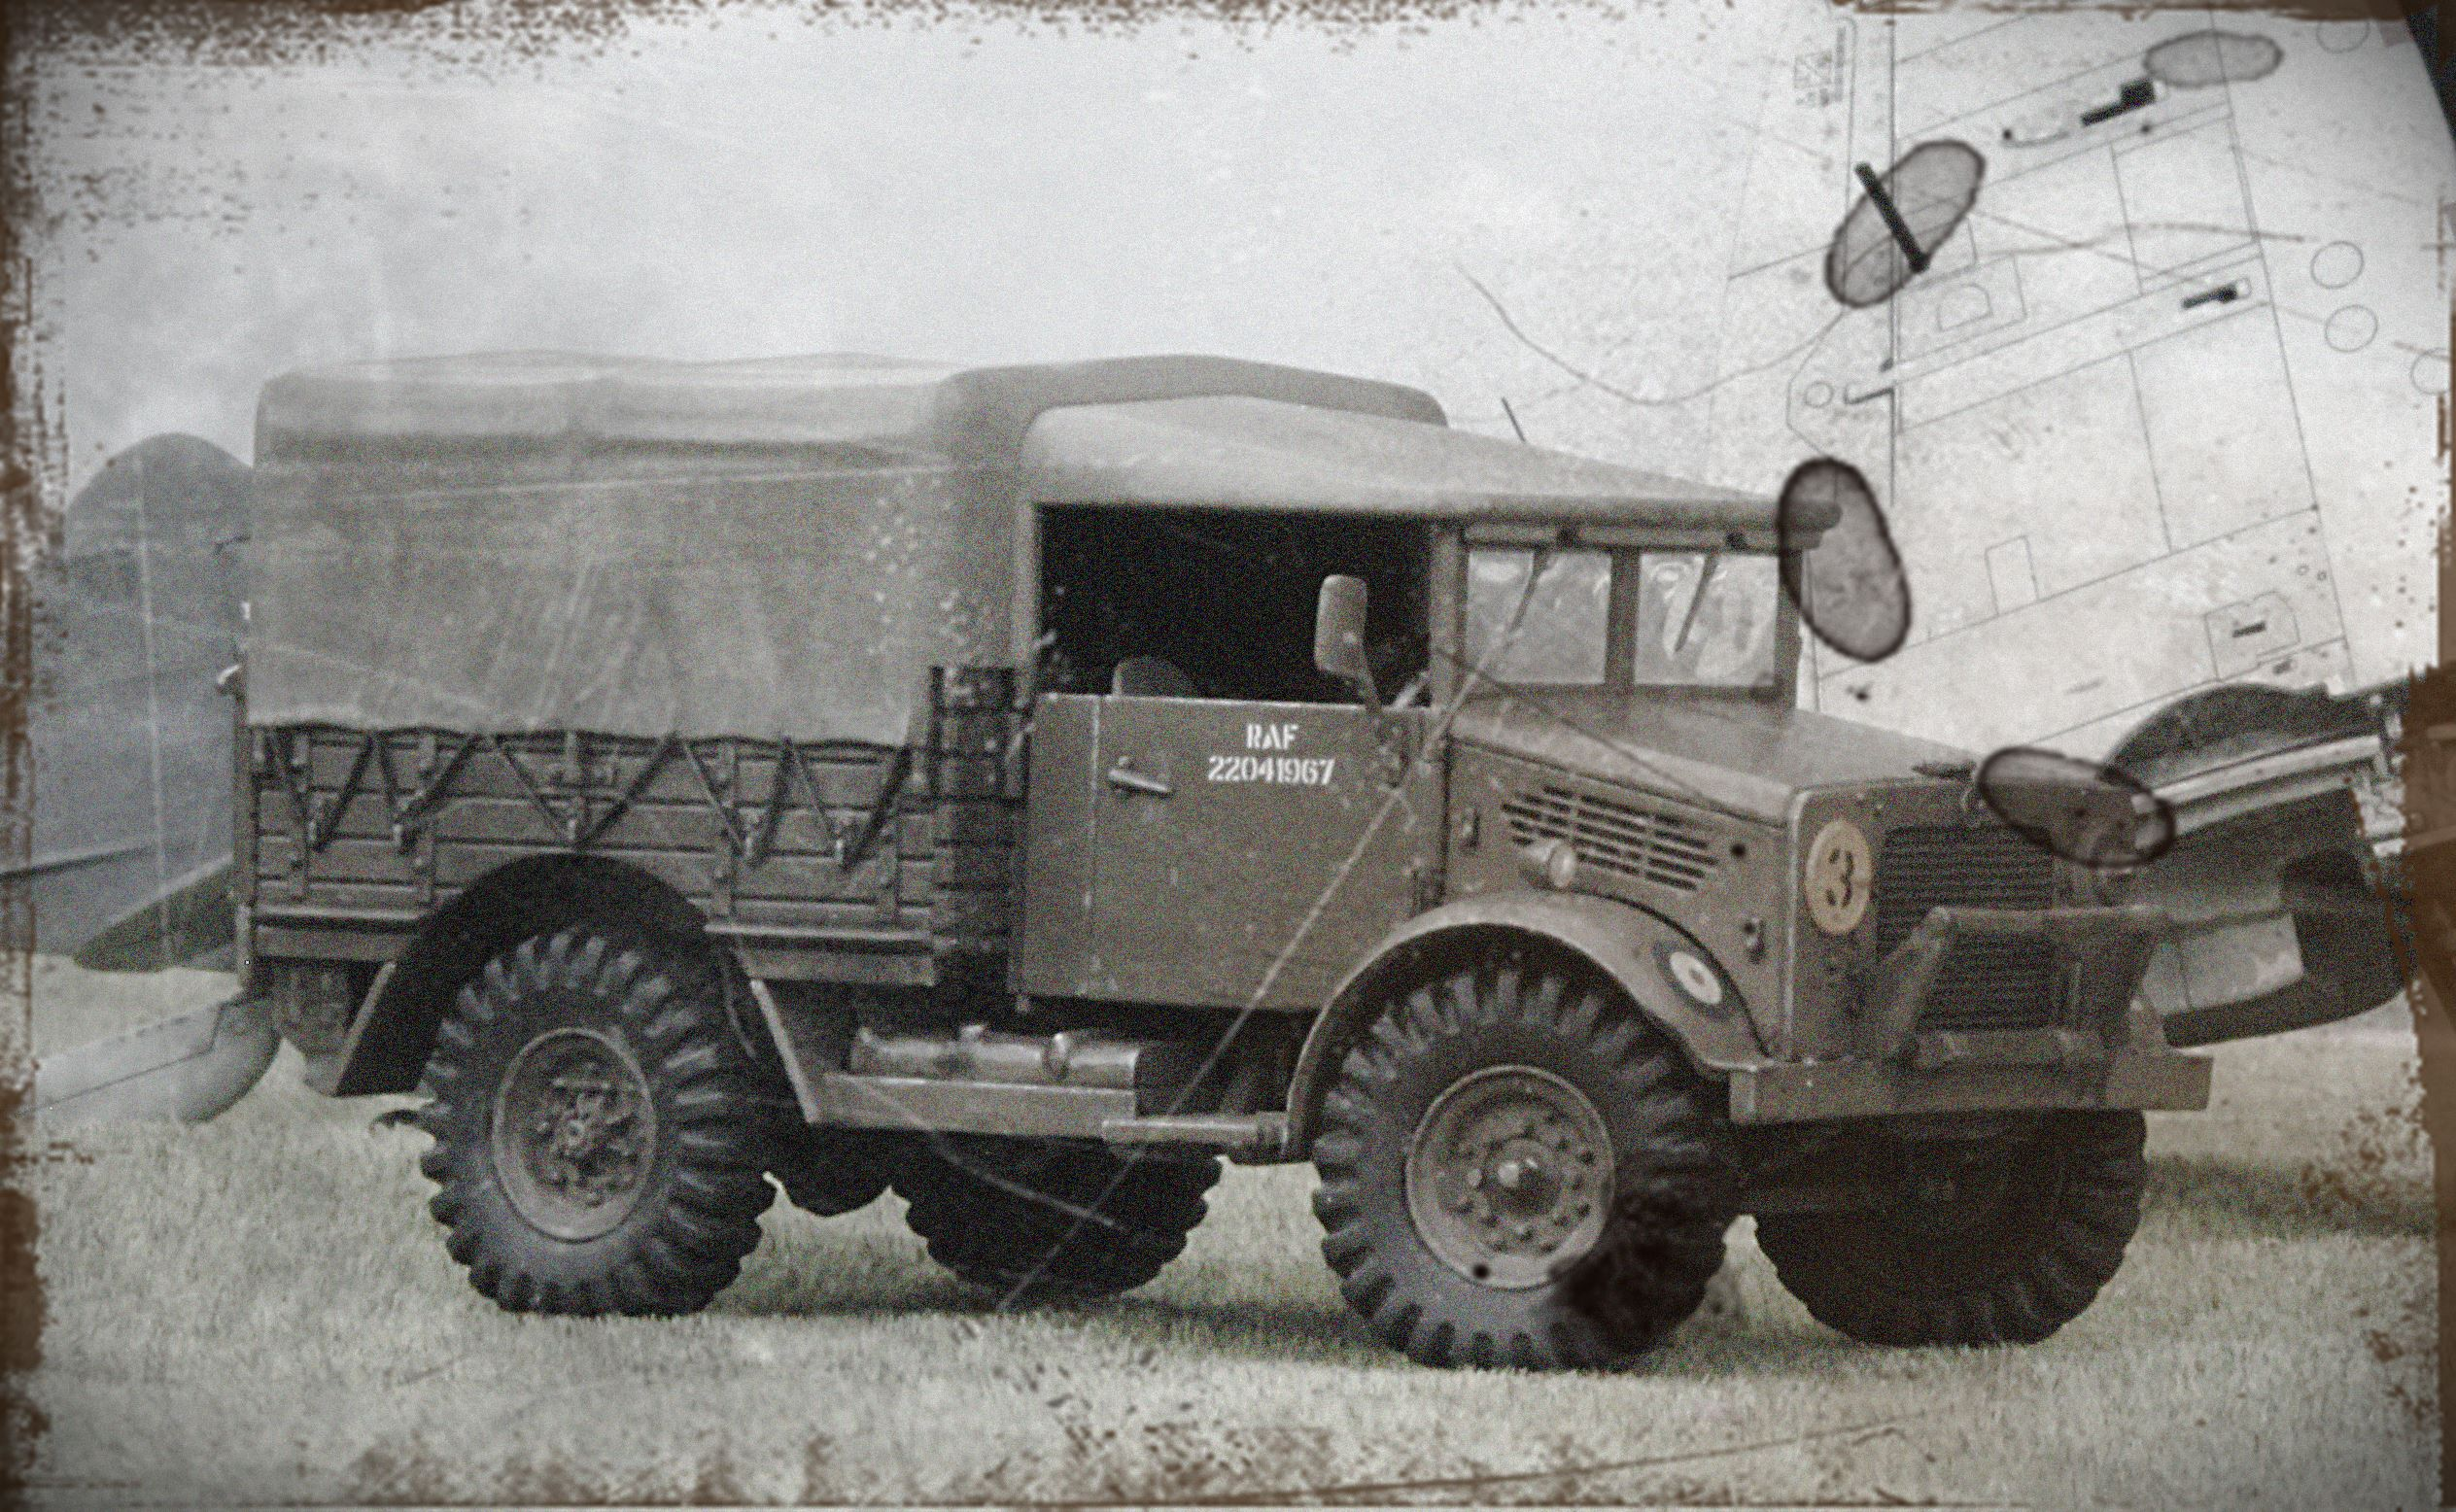 Airfix 1/48th scale late version Bedford MWD in RAF service. Image has a decorative 'vintage' overlay applied.